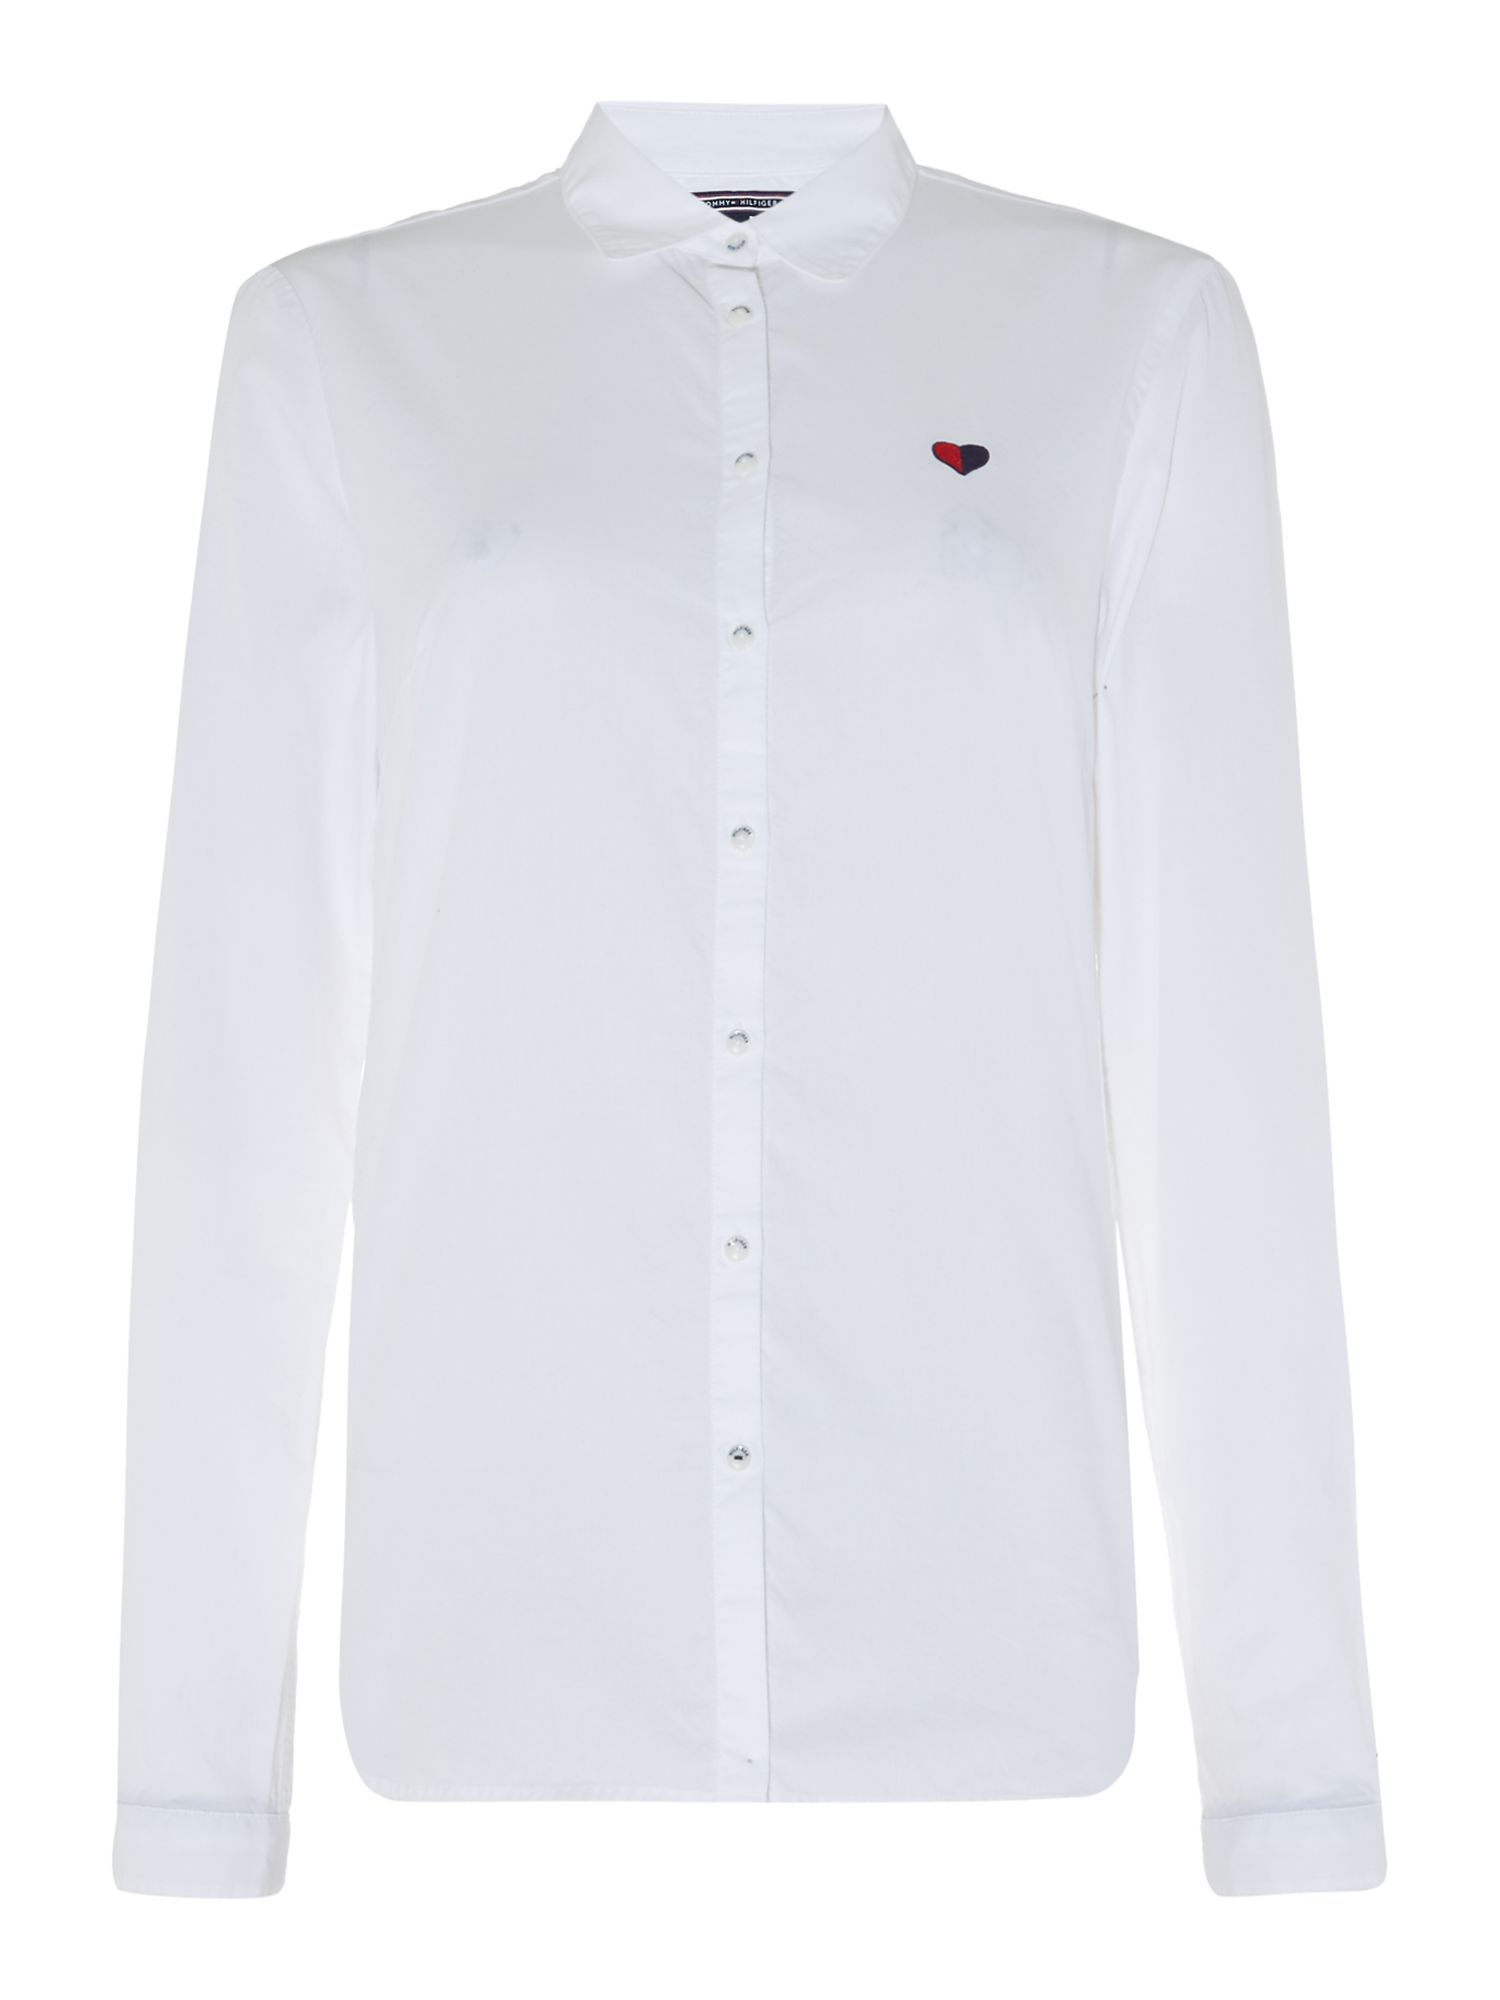 Tommy Hilfiger Aurora Oxford Shirt, White